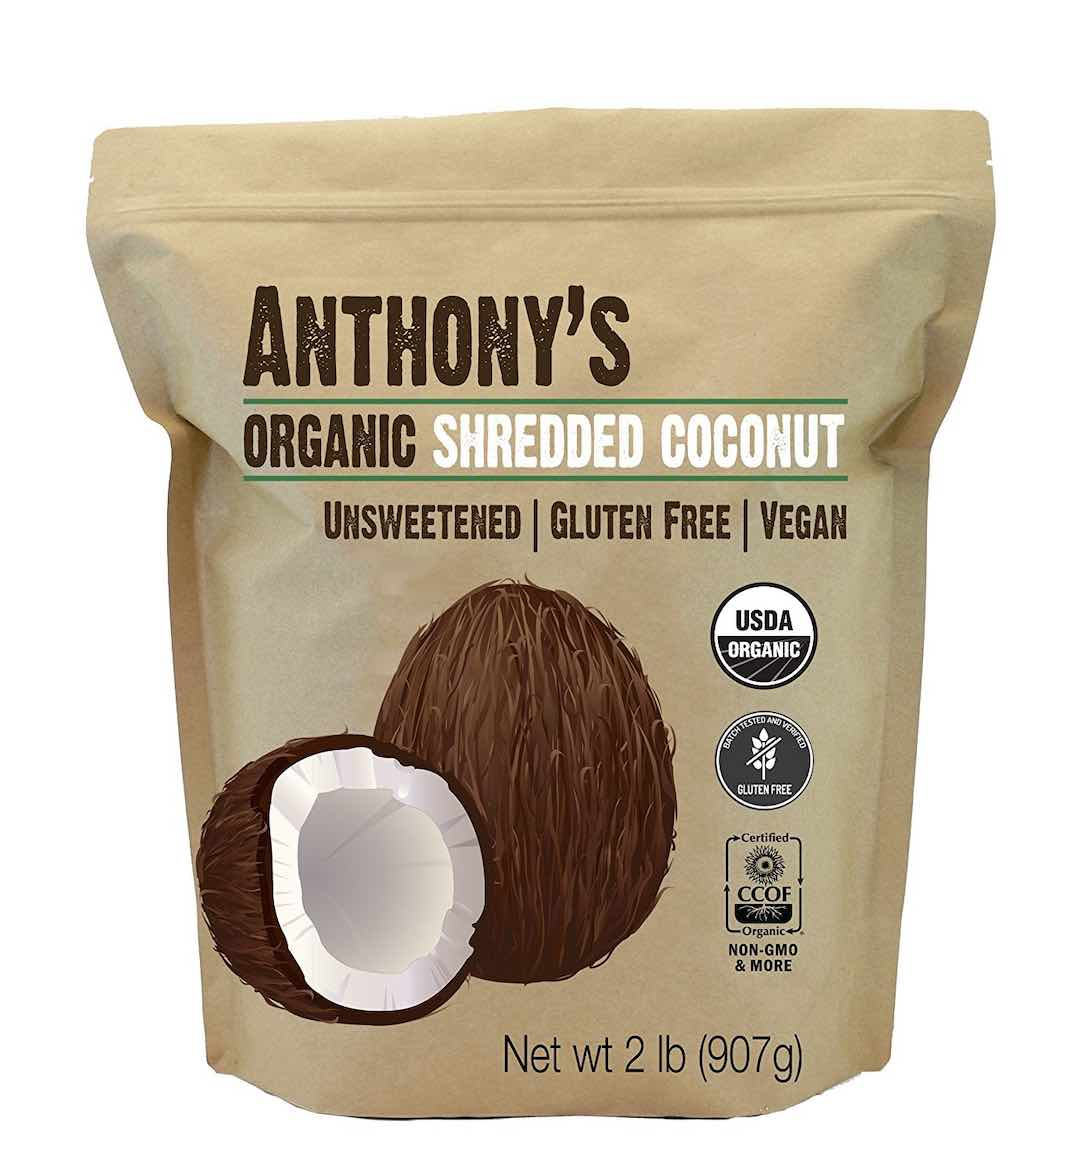 Anthony's Organic Shredded Coconut